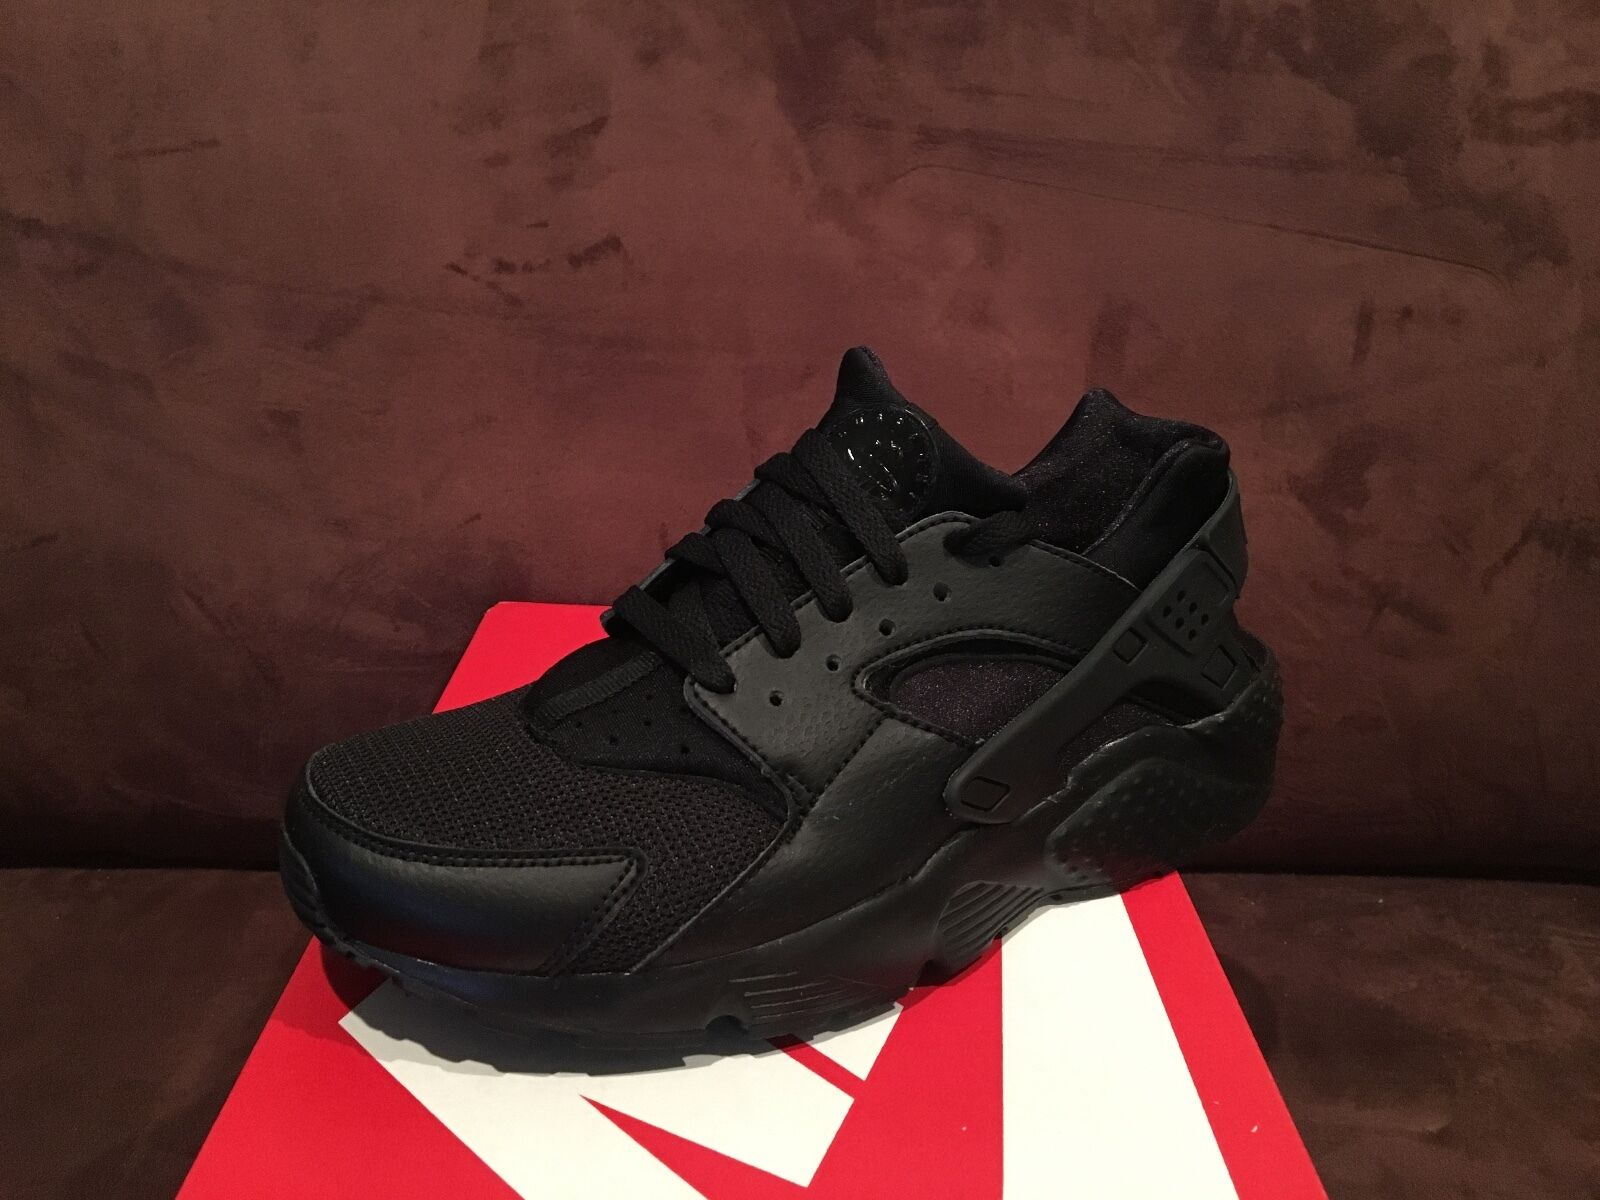 Nike Air Huarache low all black 90 95 1 foamposite uptempo White GS Boys kids